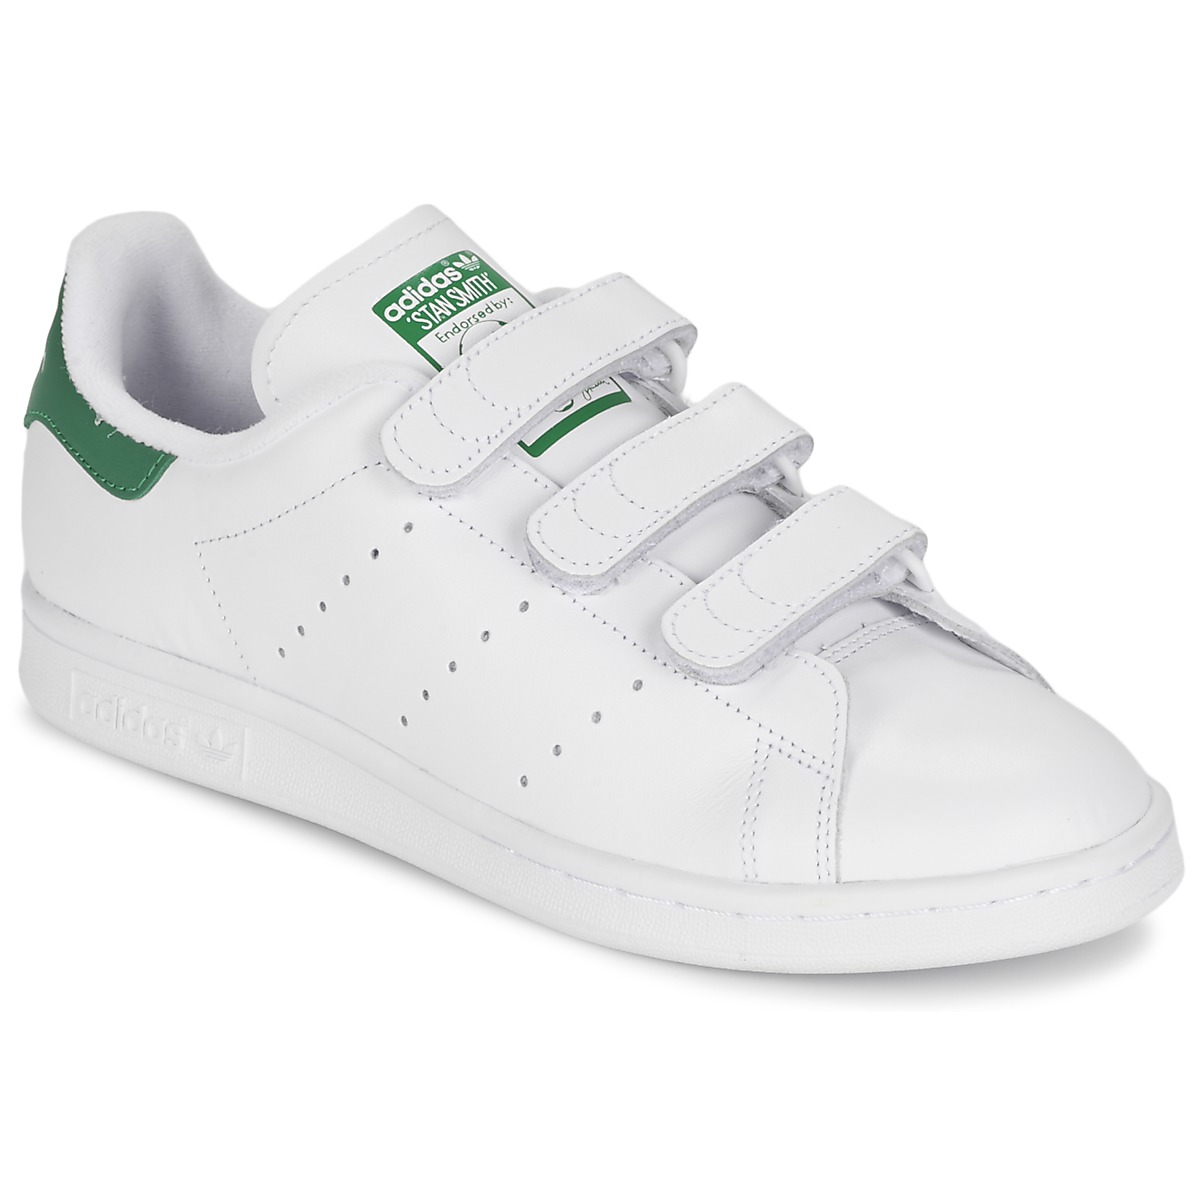 8e2ad9264489 adidas Originals STAN SMITH CF White / Green - Free delivery | Spartoo NET  ! - Shoes Low top trainers USD/$108.00